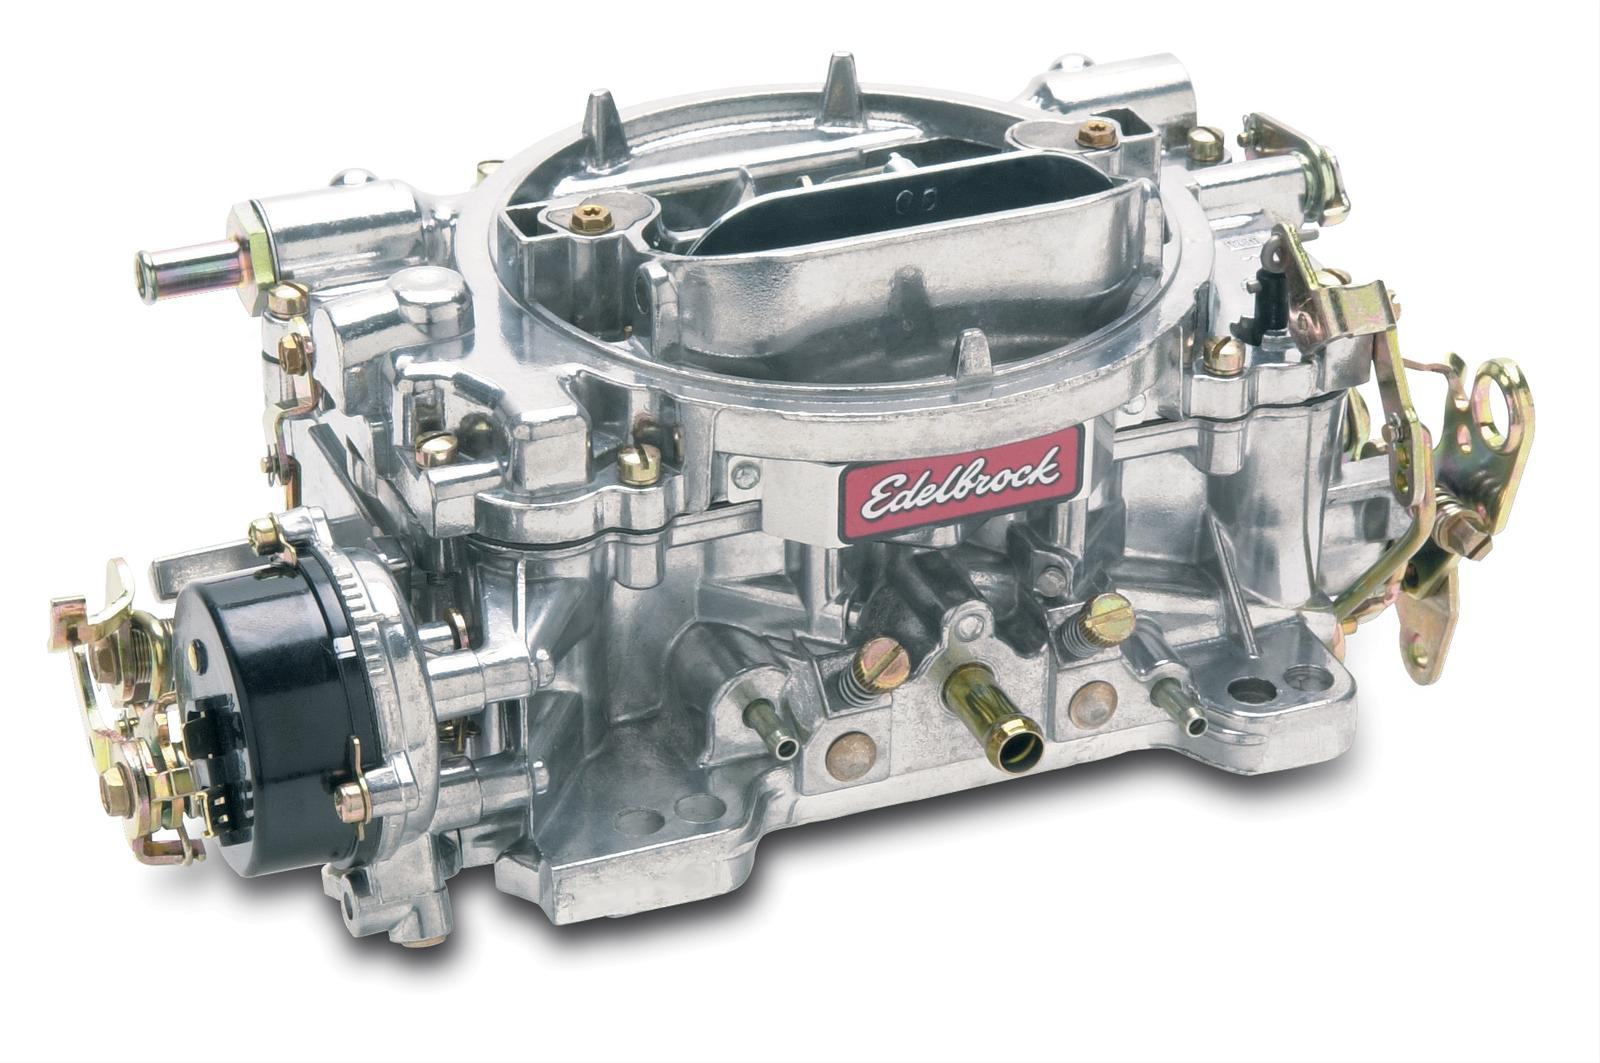 Edelbrock Performer Remanufactured Carburetors 9963 - Free Shipping on  Orders Over $99 at Summit Racing